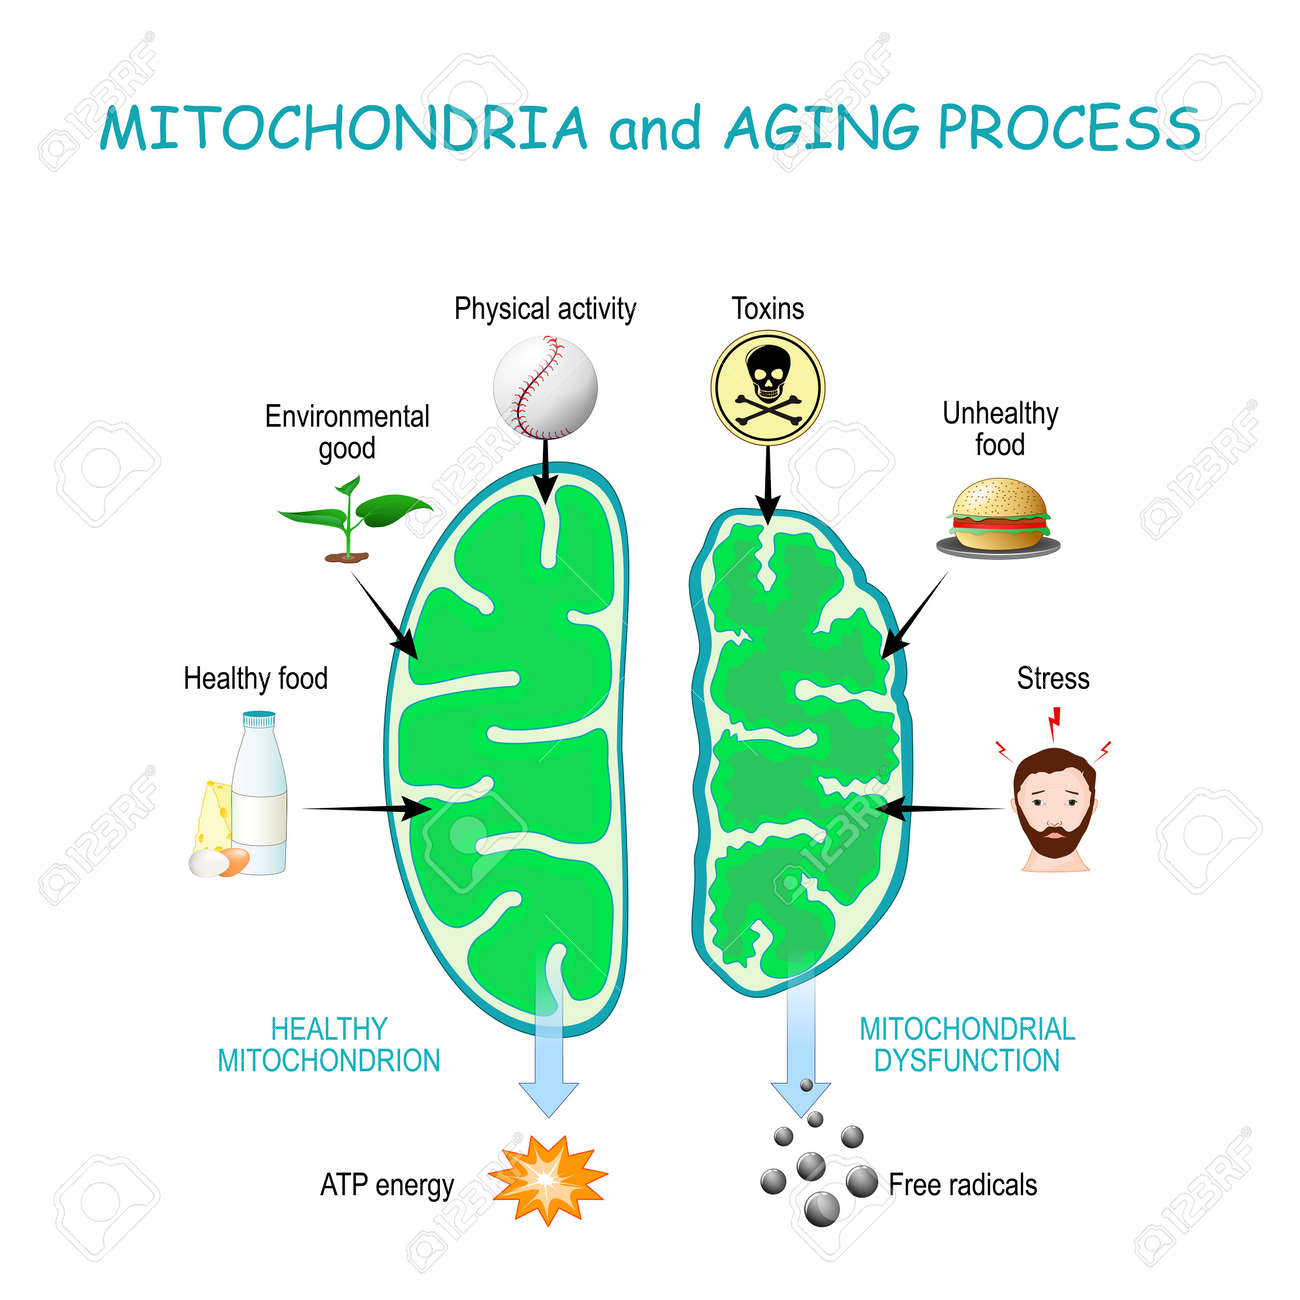 Mitochondria and aging process. Healthy Mitochondrion are produce of Atp energy, cell organelles with Dysfunction produce of Free radicals. - 173872205